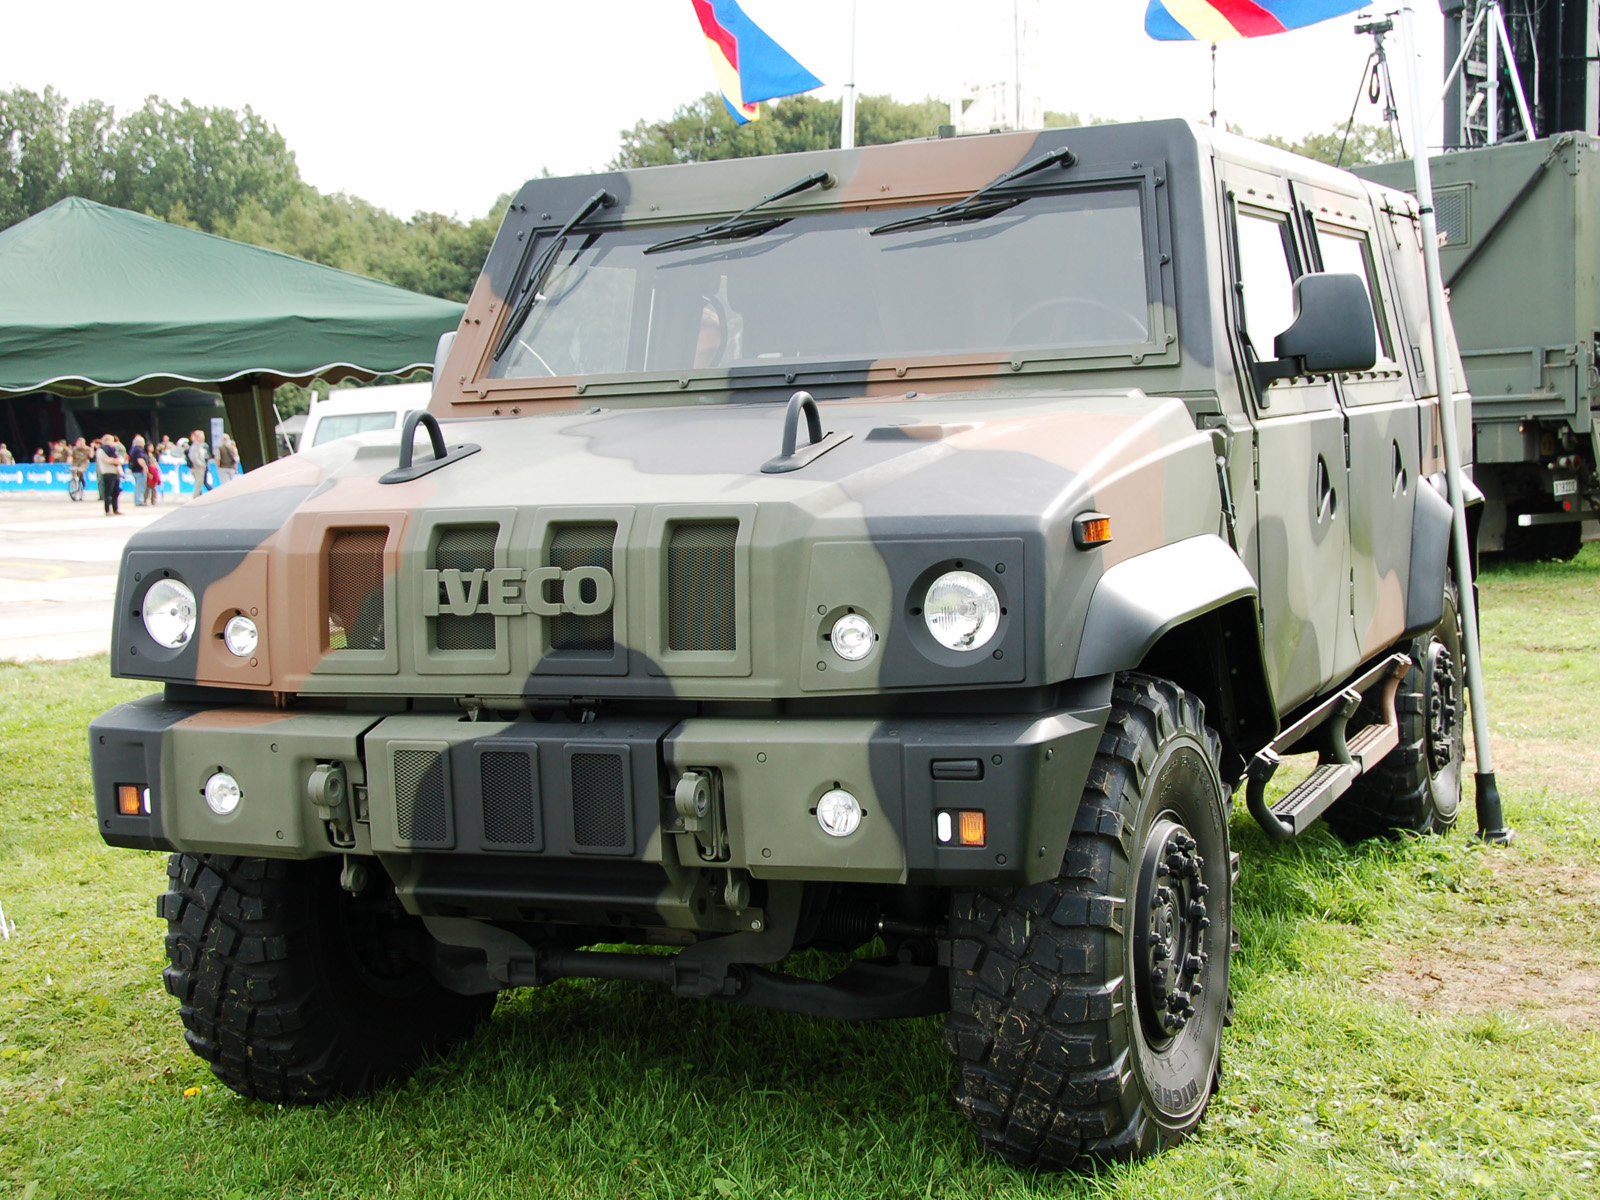 Iveco Lmv Photos Photogallery With 5 Pics Carsbase Com